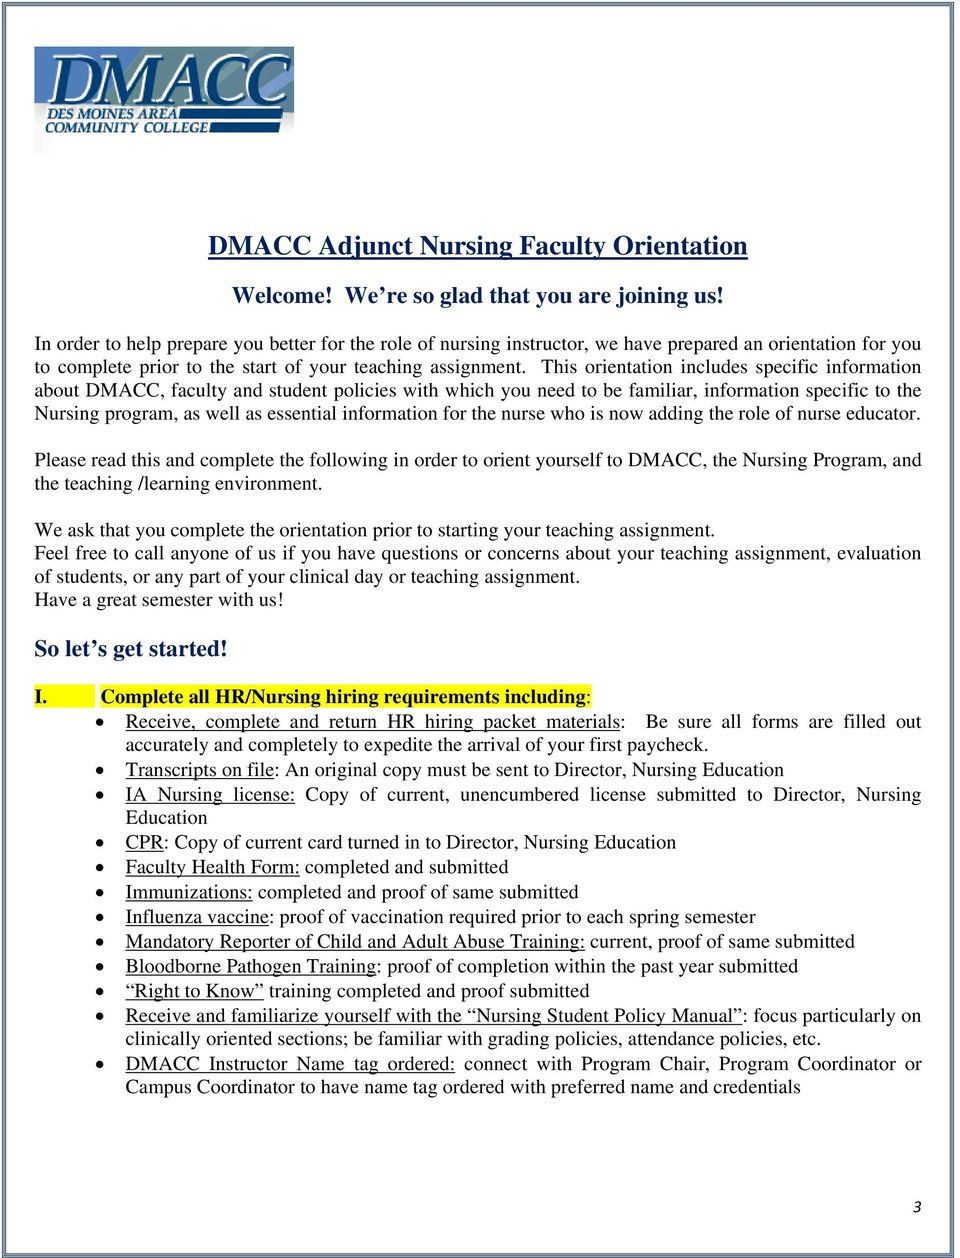 This orientation includes specific information about DMACC, faculty and student policies with which you need to be familiar, information specific to the Nursing program, as well as essential